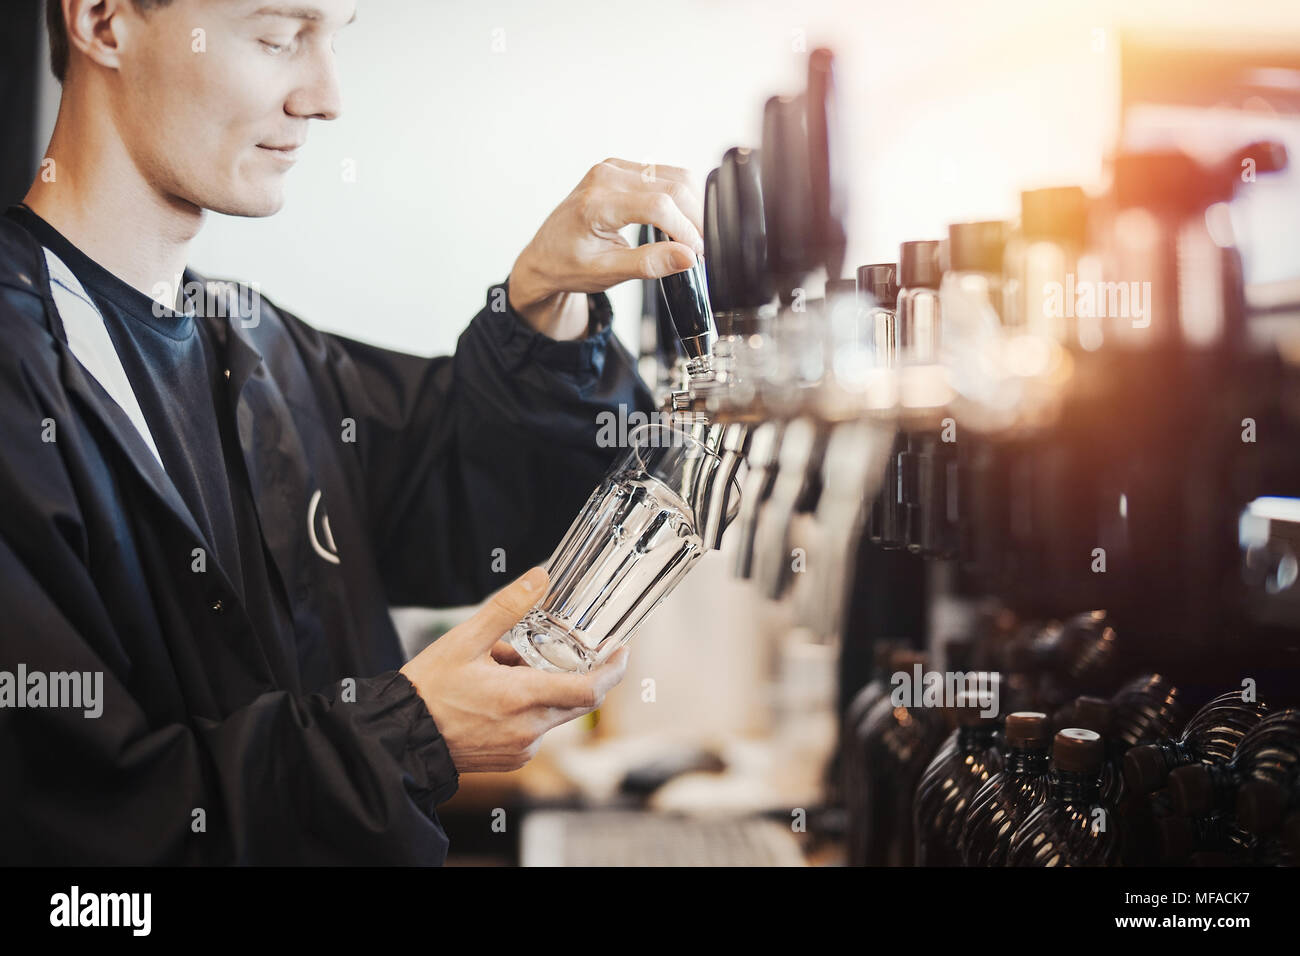 Bartender man poors glass of beer. - Stock Image